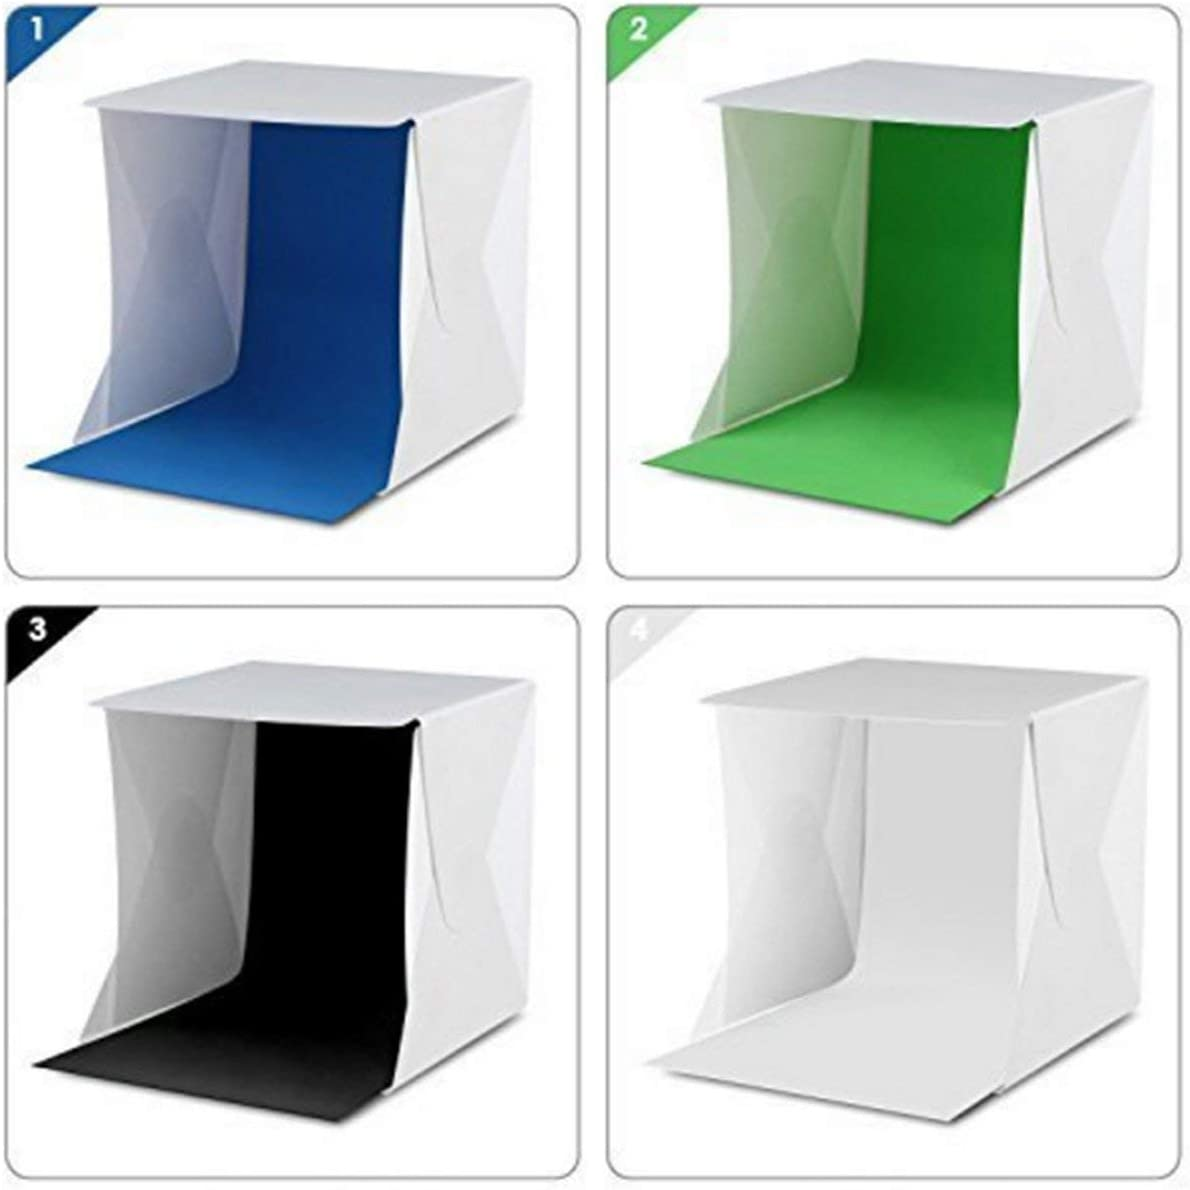 8.5X8.5X8.5 Inches 4 Colors Backdrops Liobaba Light Tent Portable Light Box Photography Kit with LED Light